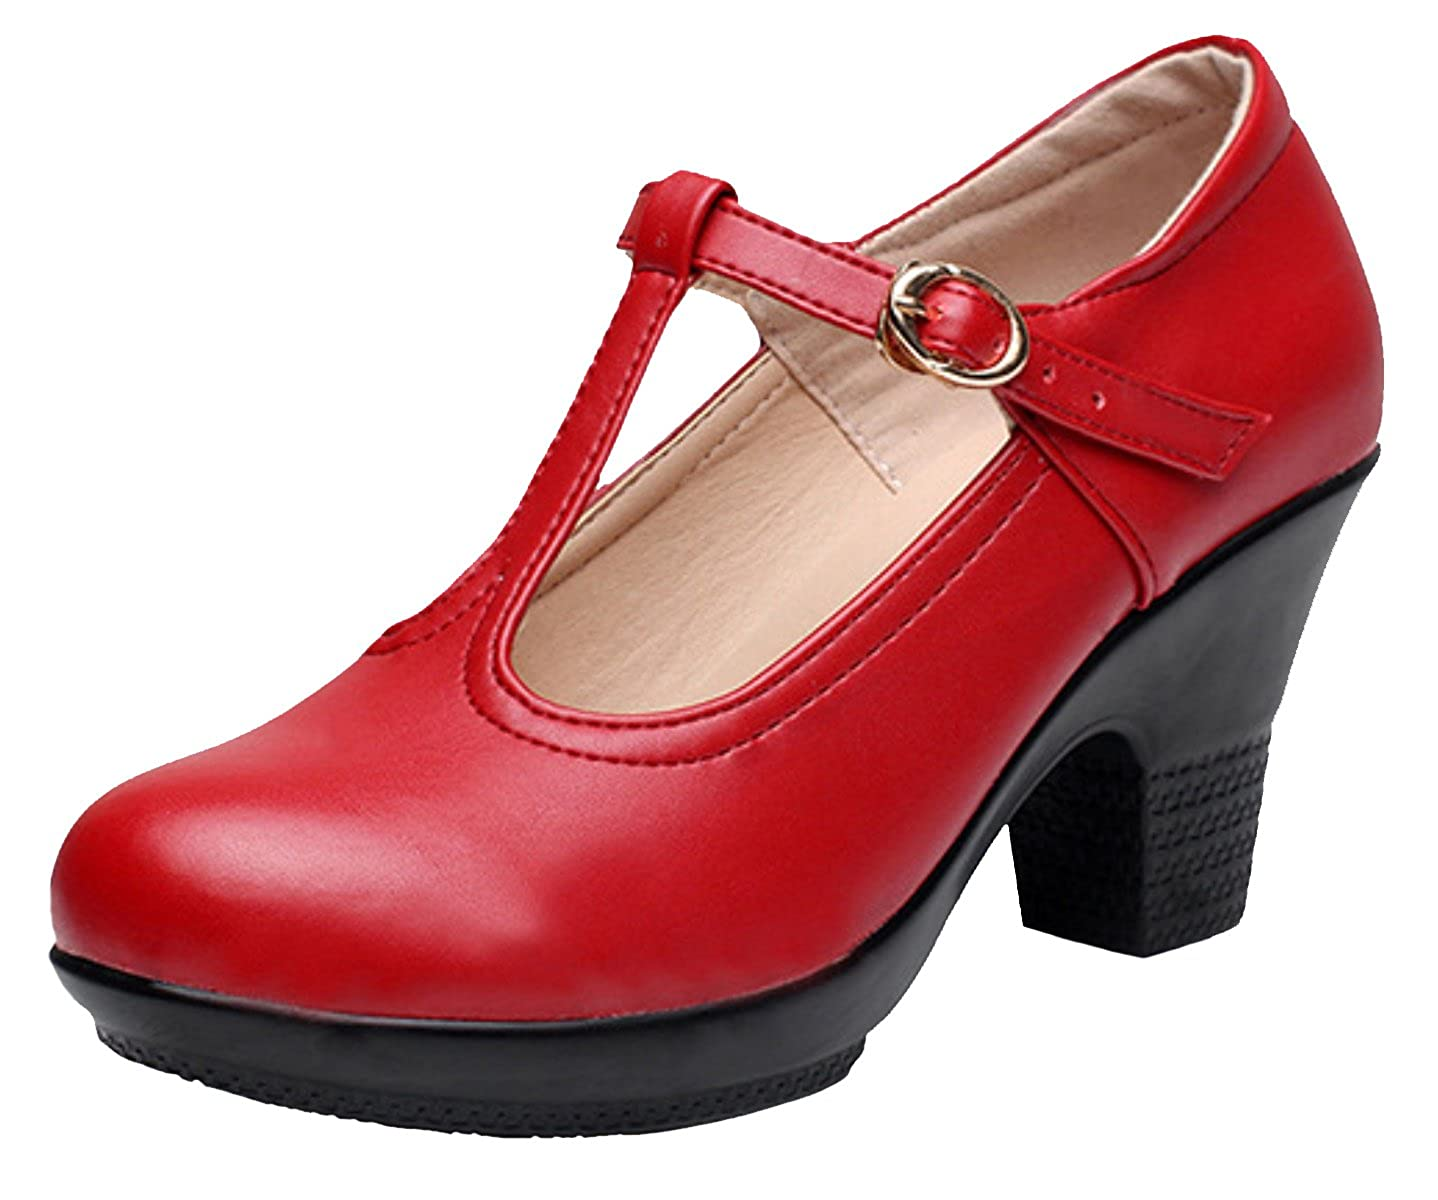 afd25db5d5f DADAWEN Women s T-Strap Platform Court Shoes Mid Heel Mary Jane Shoes   Amazon.co.uk  Shoes   Bags